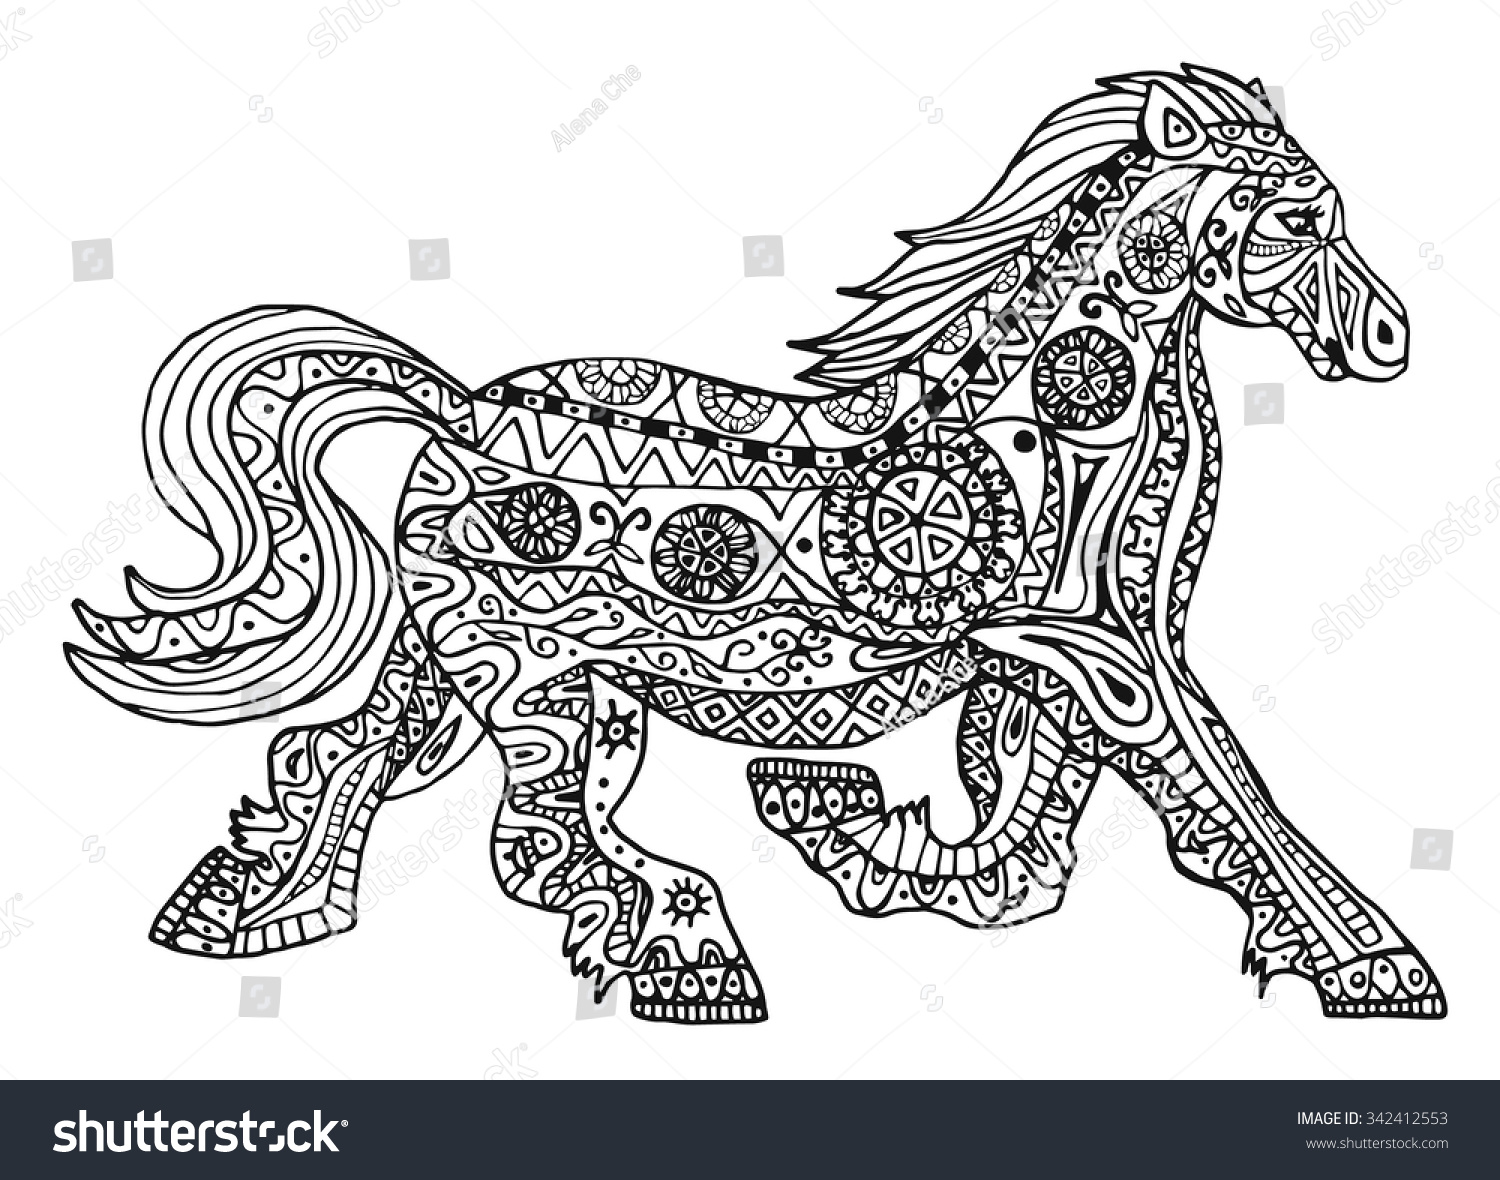 black white horse print ethnic zentangle stock vector 342412553